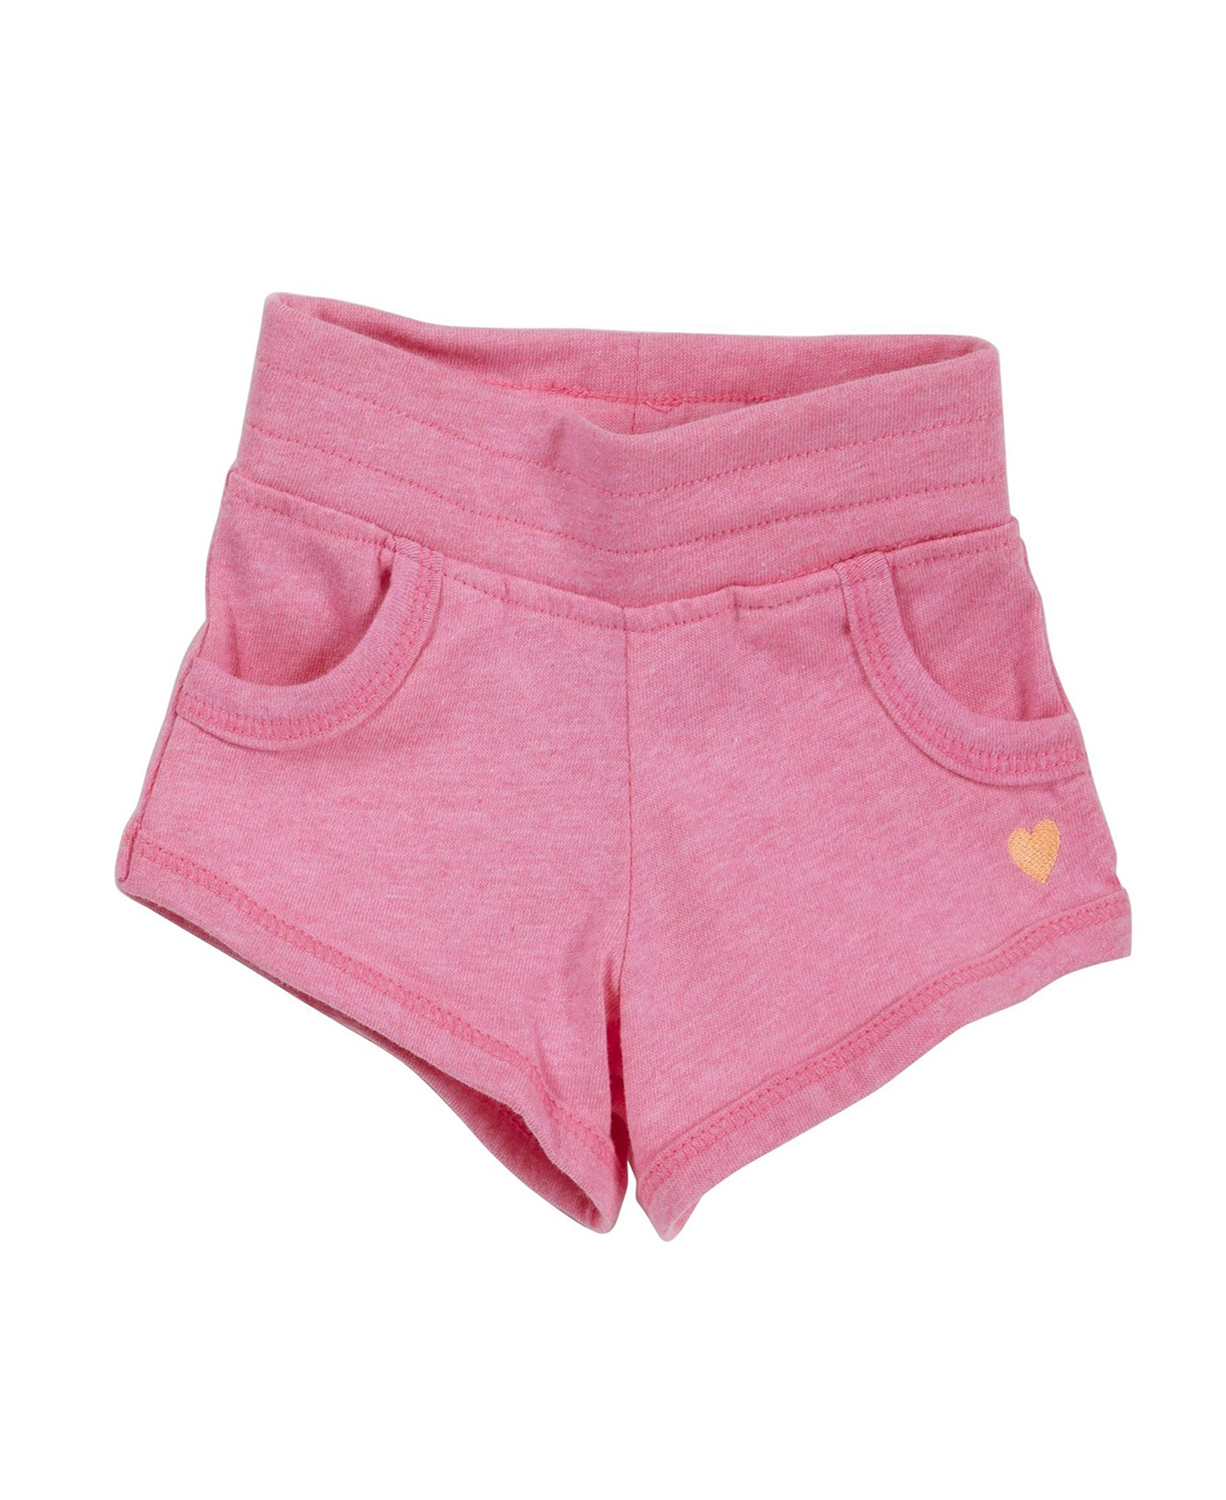 Carter's Knit Baby Girl Shorts (Stylish) - Baby Clothes ...